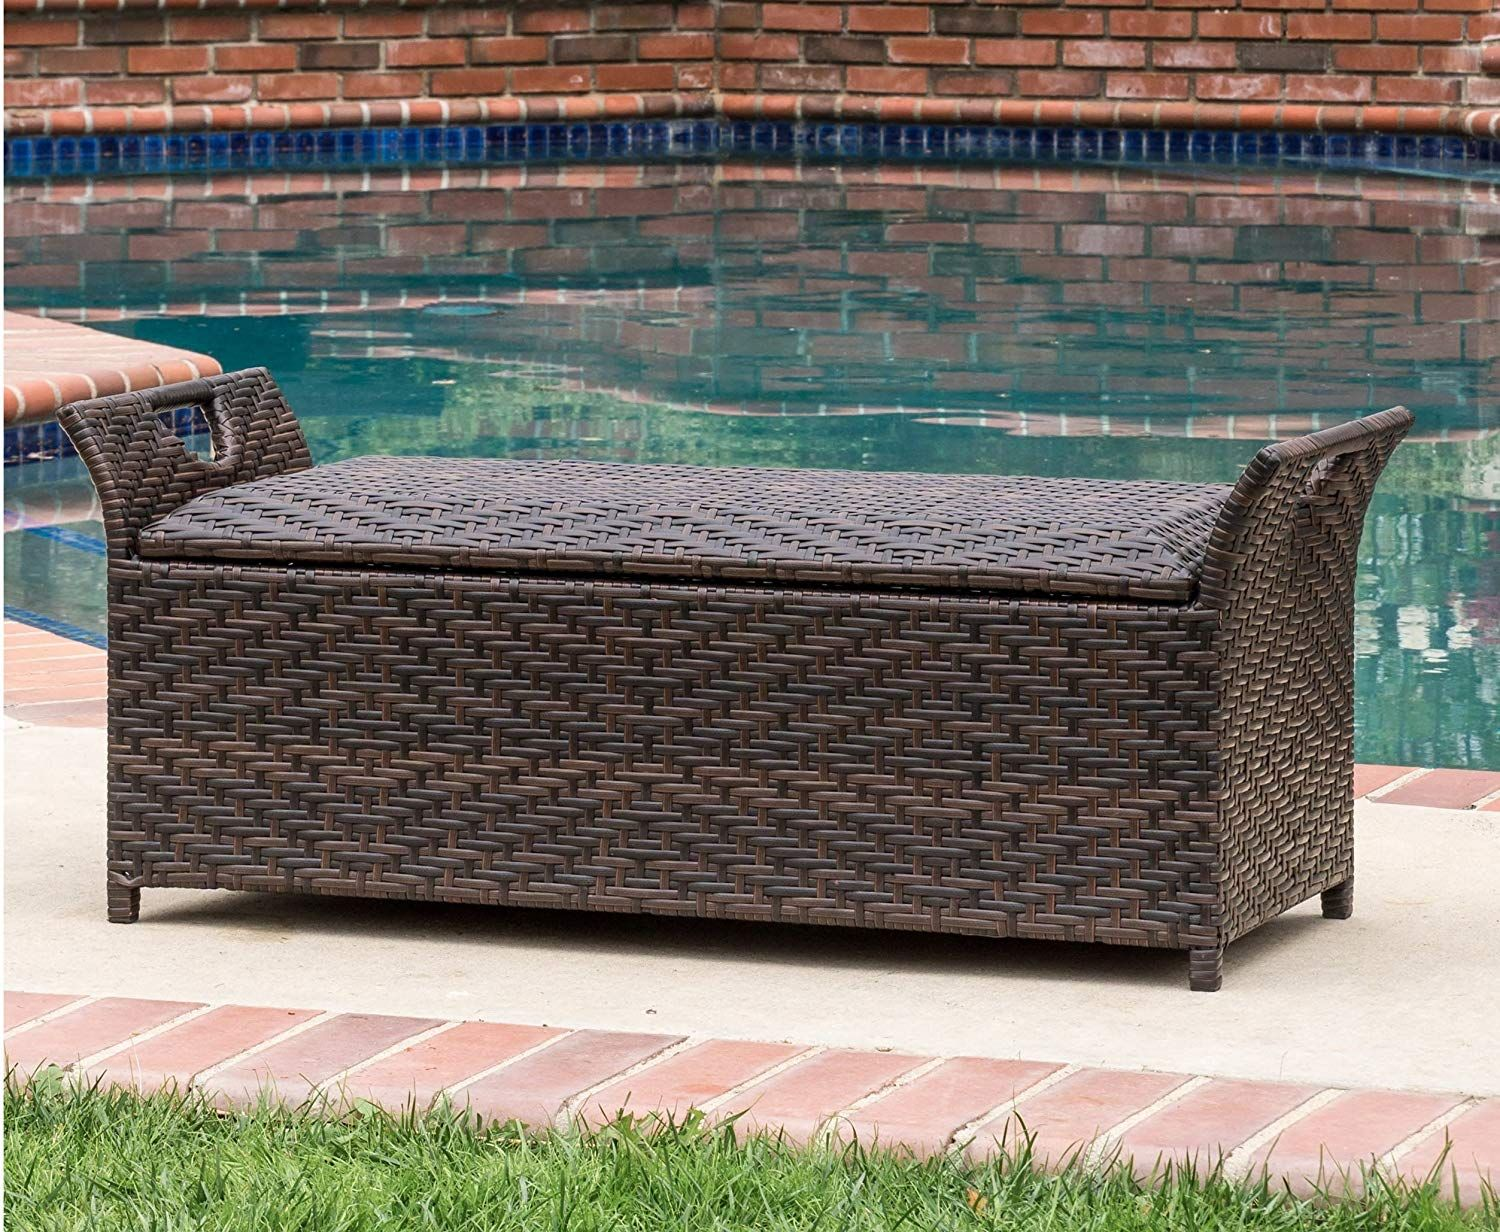 Download Wallpaper Where To Store Patio Furniture Cushions